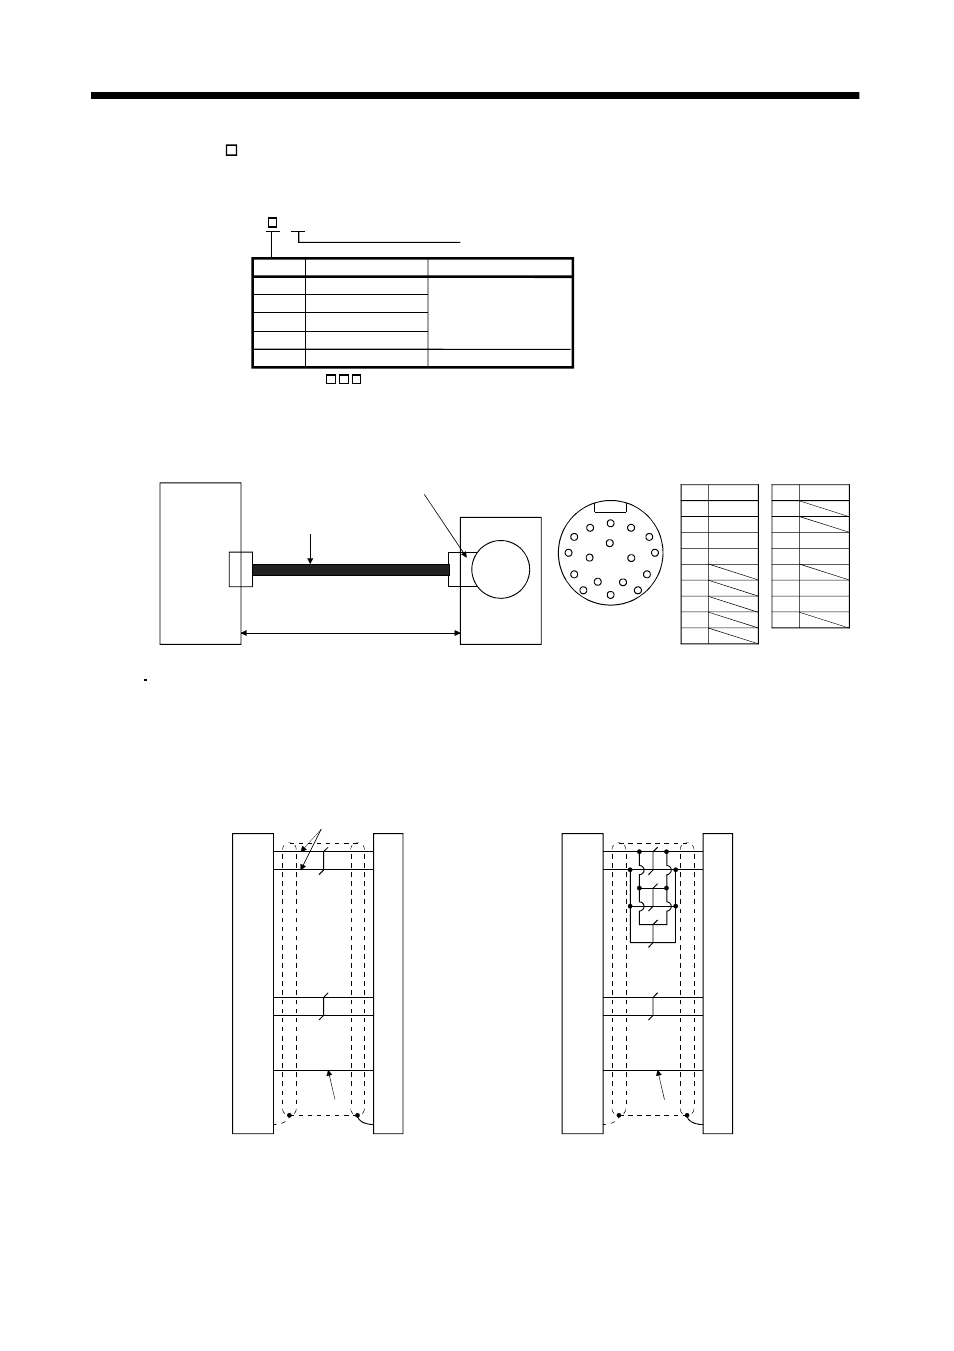 hight resolution of options and auxiliary equipment mitsubishi electric mr e a ag user manual page 188 310